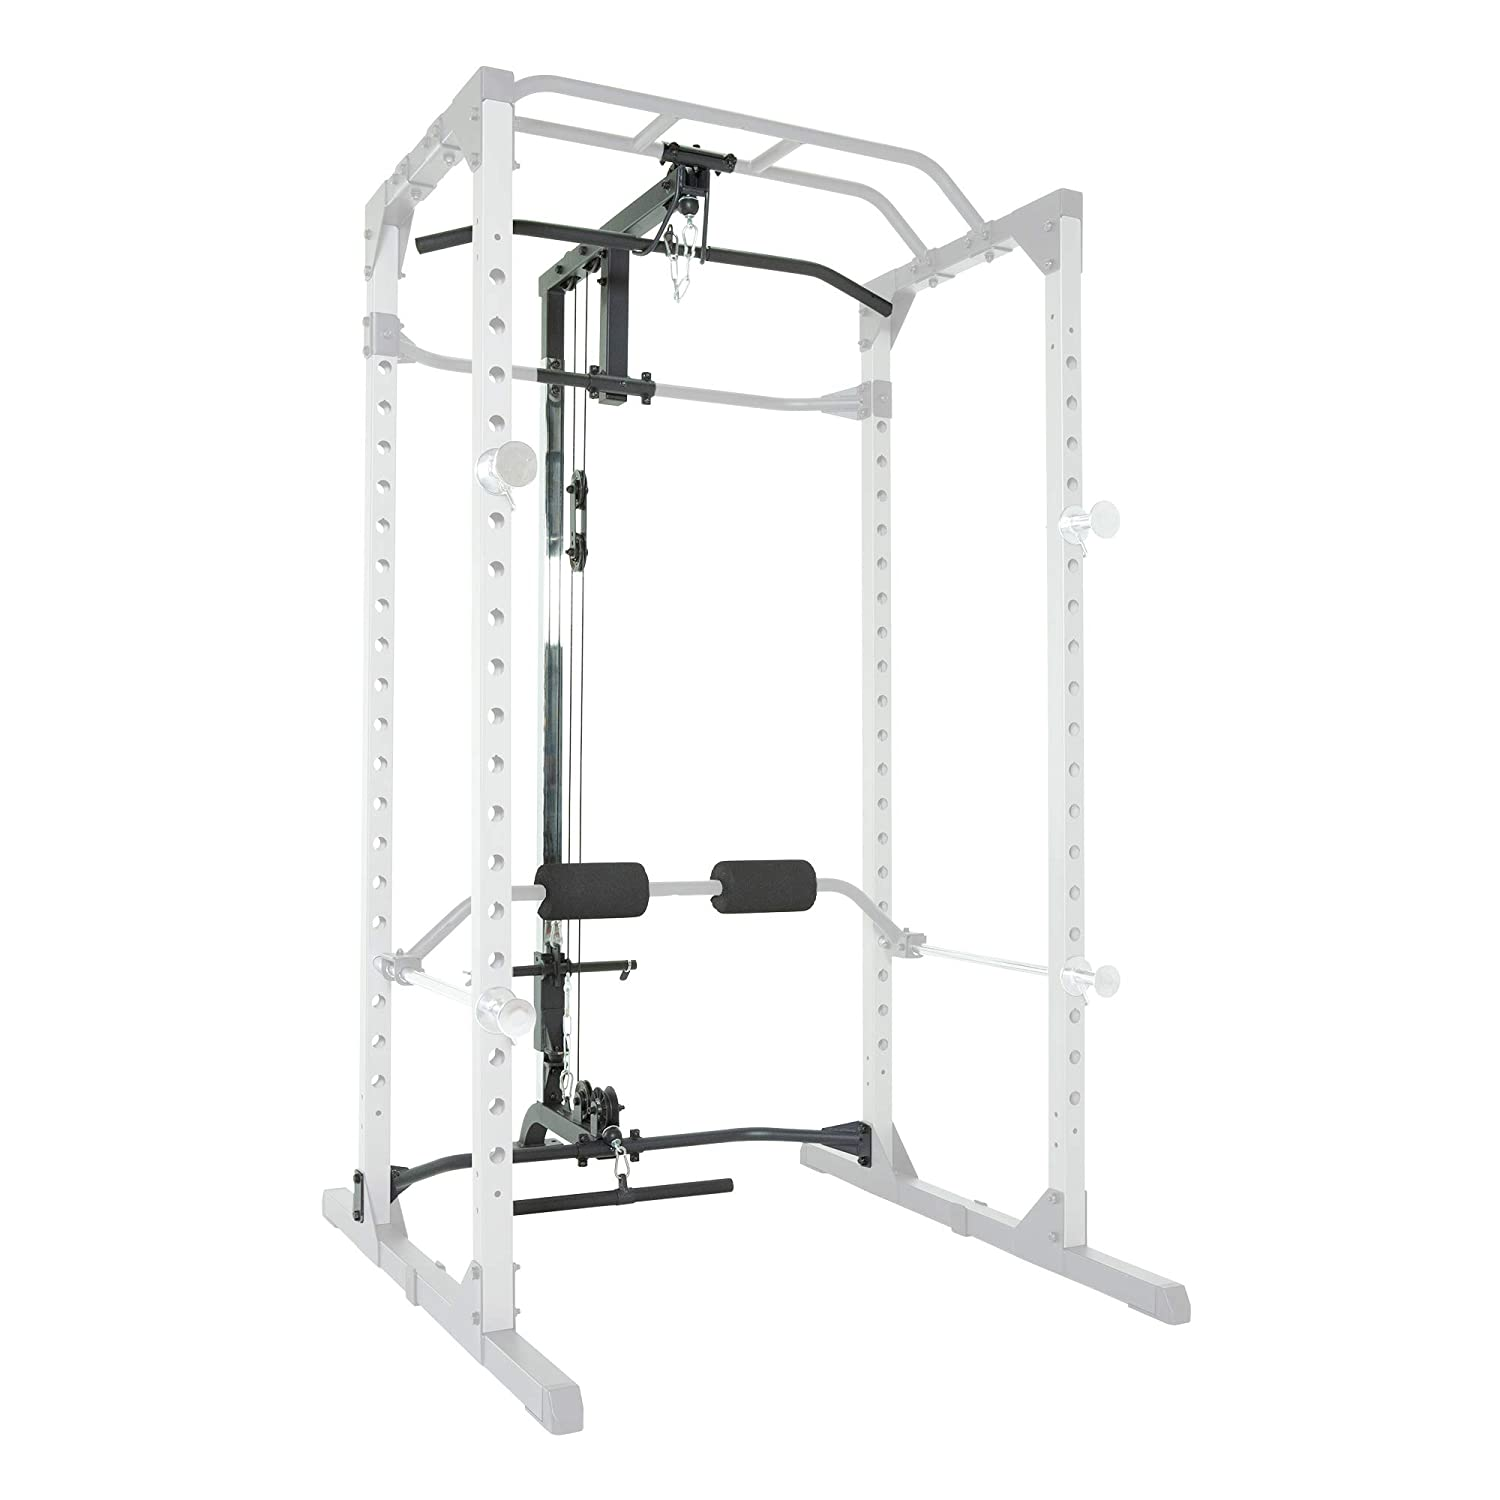 Amazon.com : fitness reality 710 olympic lat pull down and low row